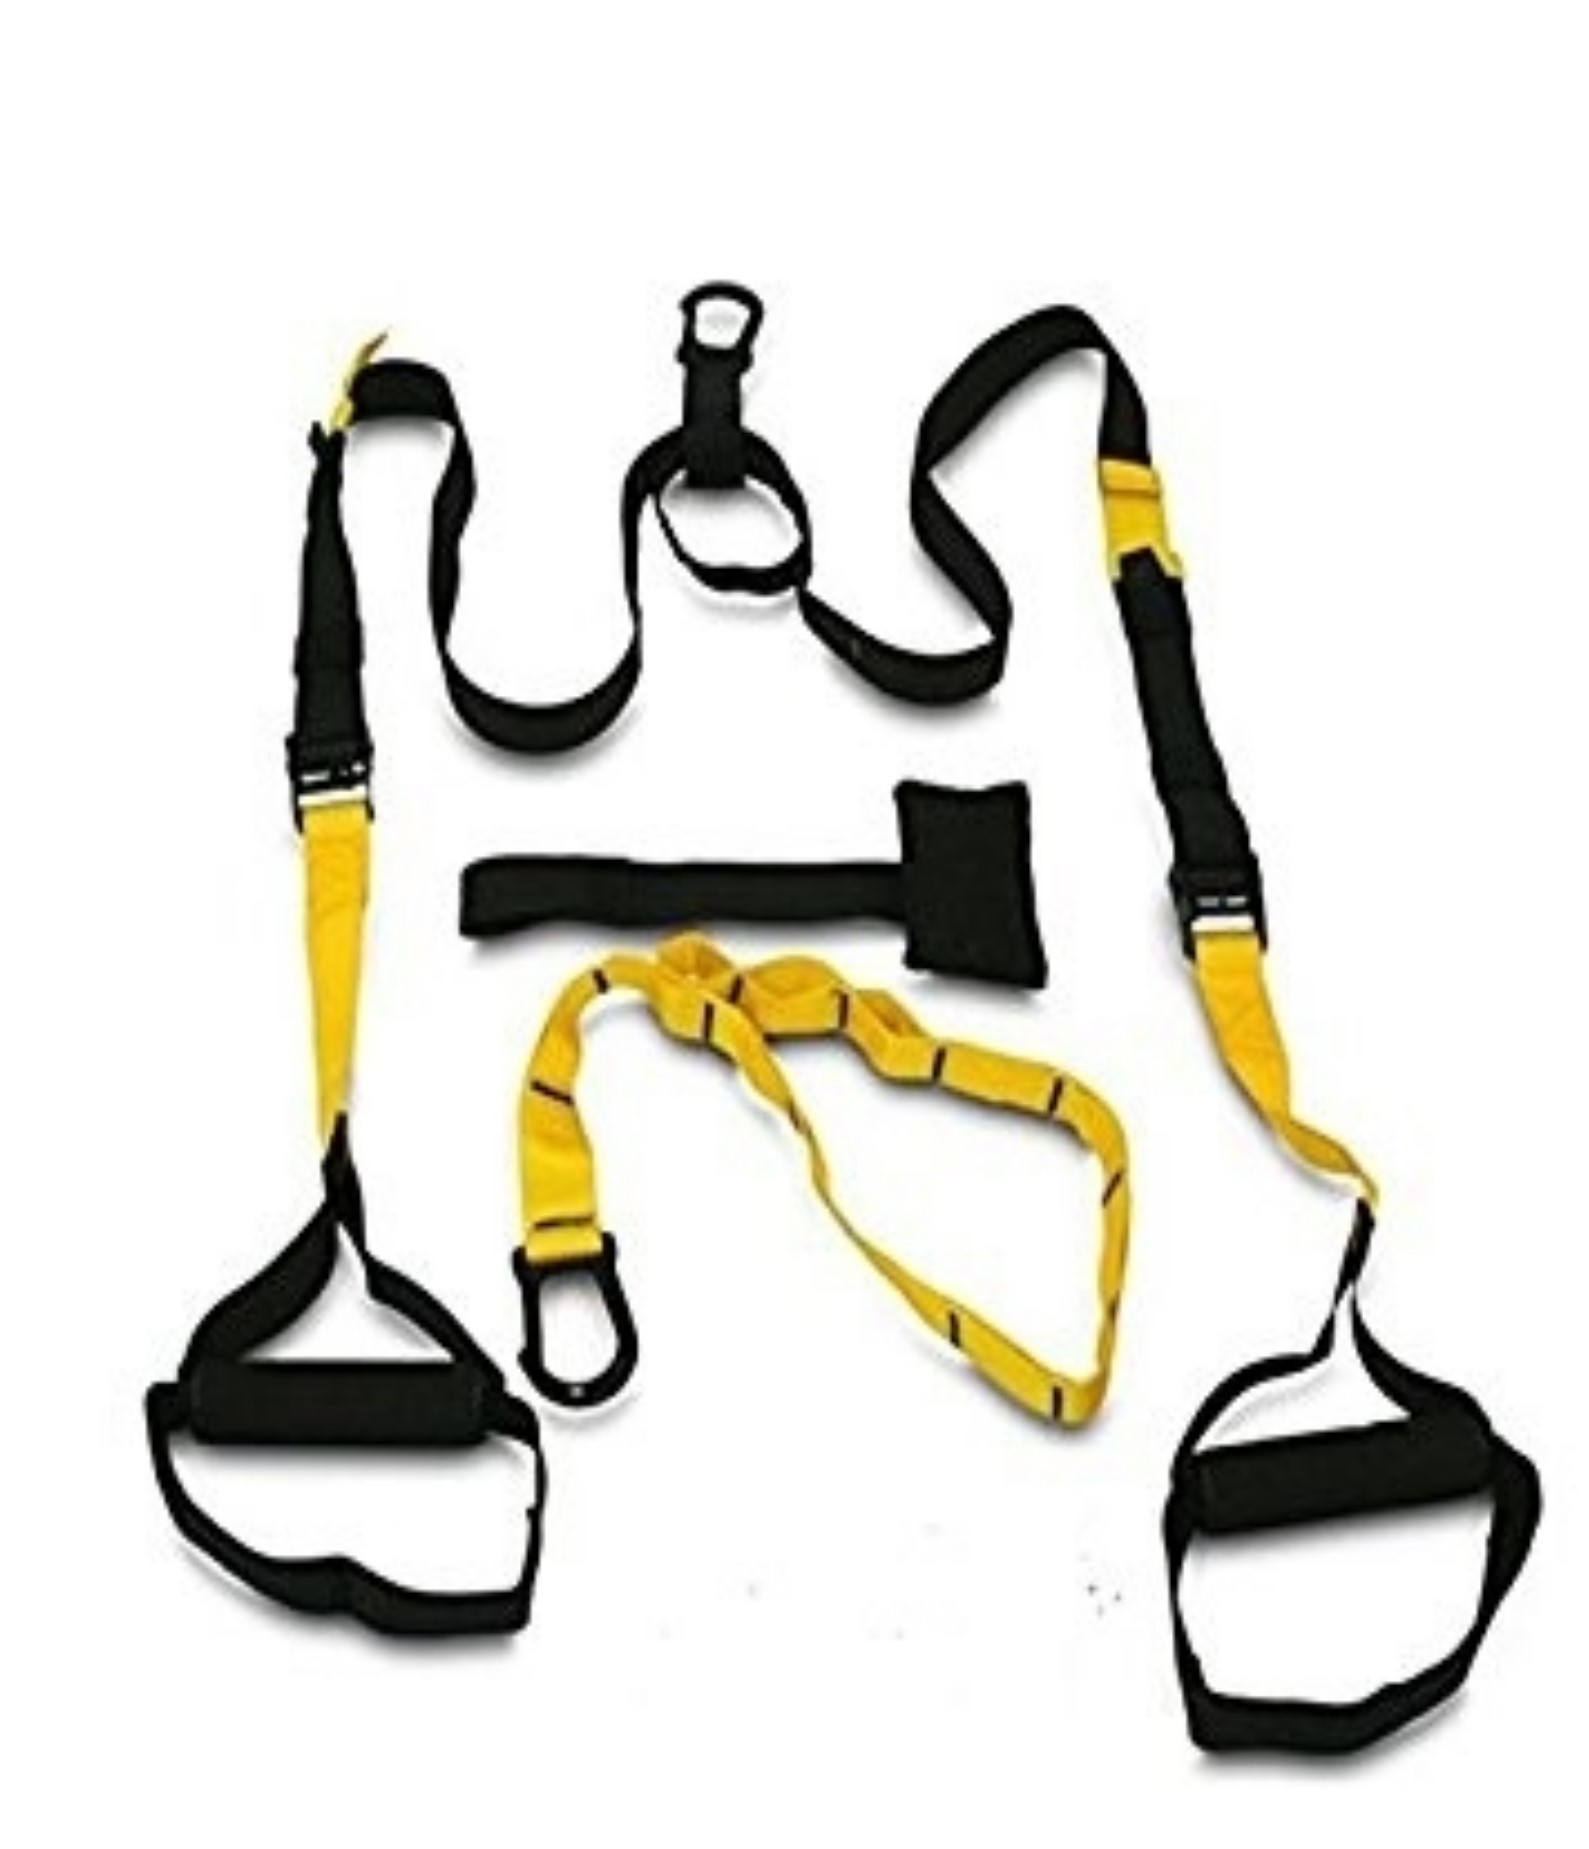 commercial suspension trainer fitness equipment ireland best forcommercial suspension trainer redes